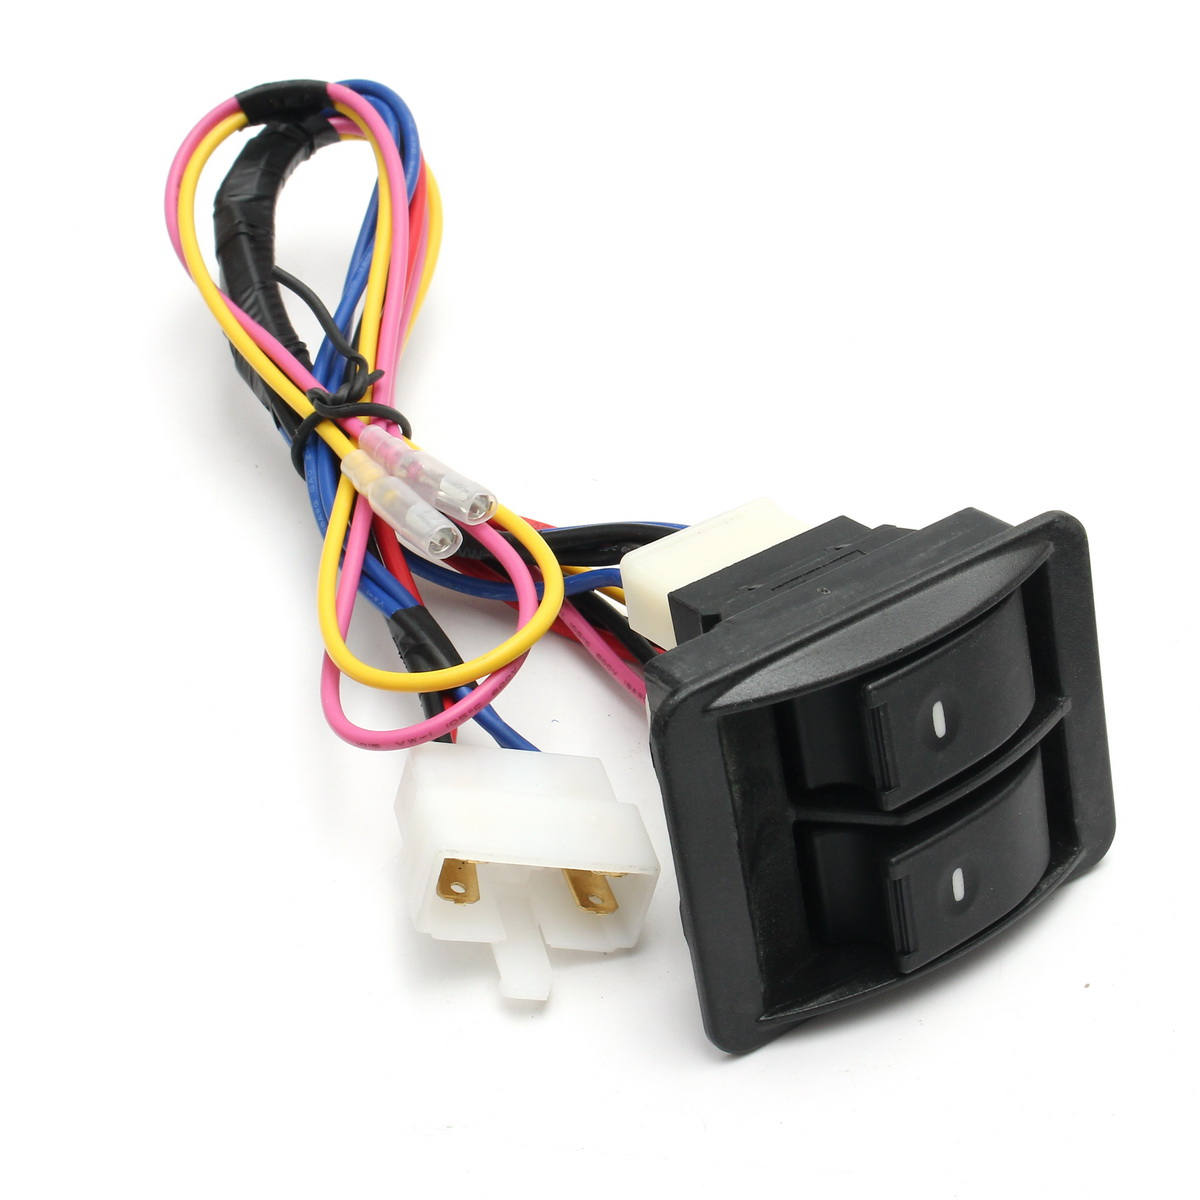 Universal 12 volt wiring harness rocker switch wiring with relay and harness trailermate wiring harness led spotlights wiring harness northman plow wiring harness diagram 12 volt wiring cable